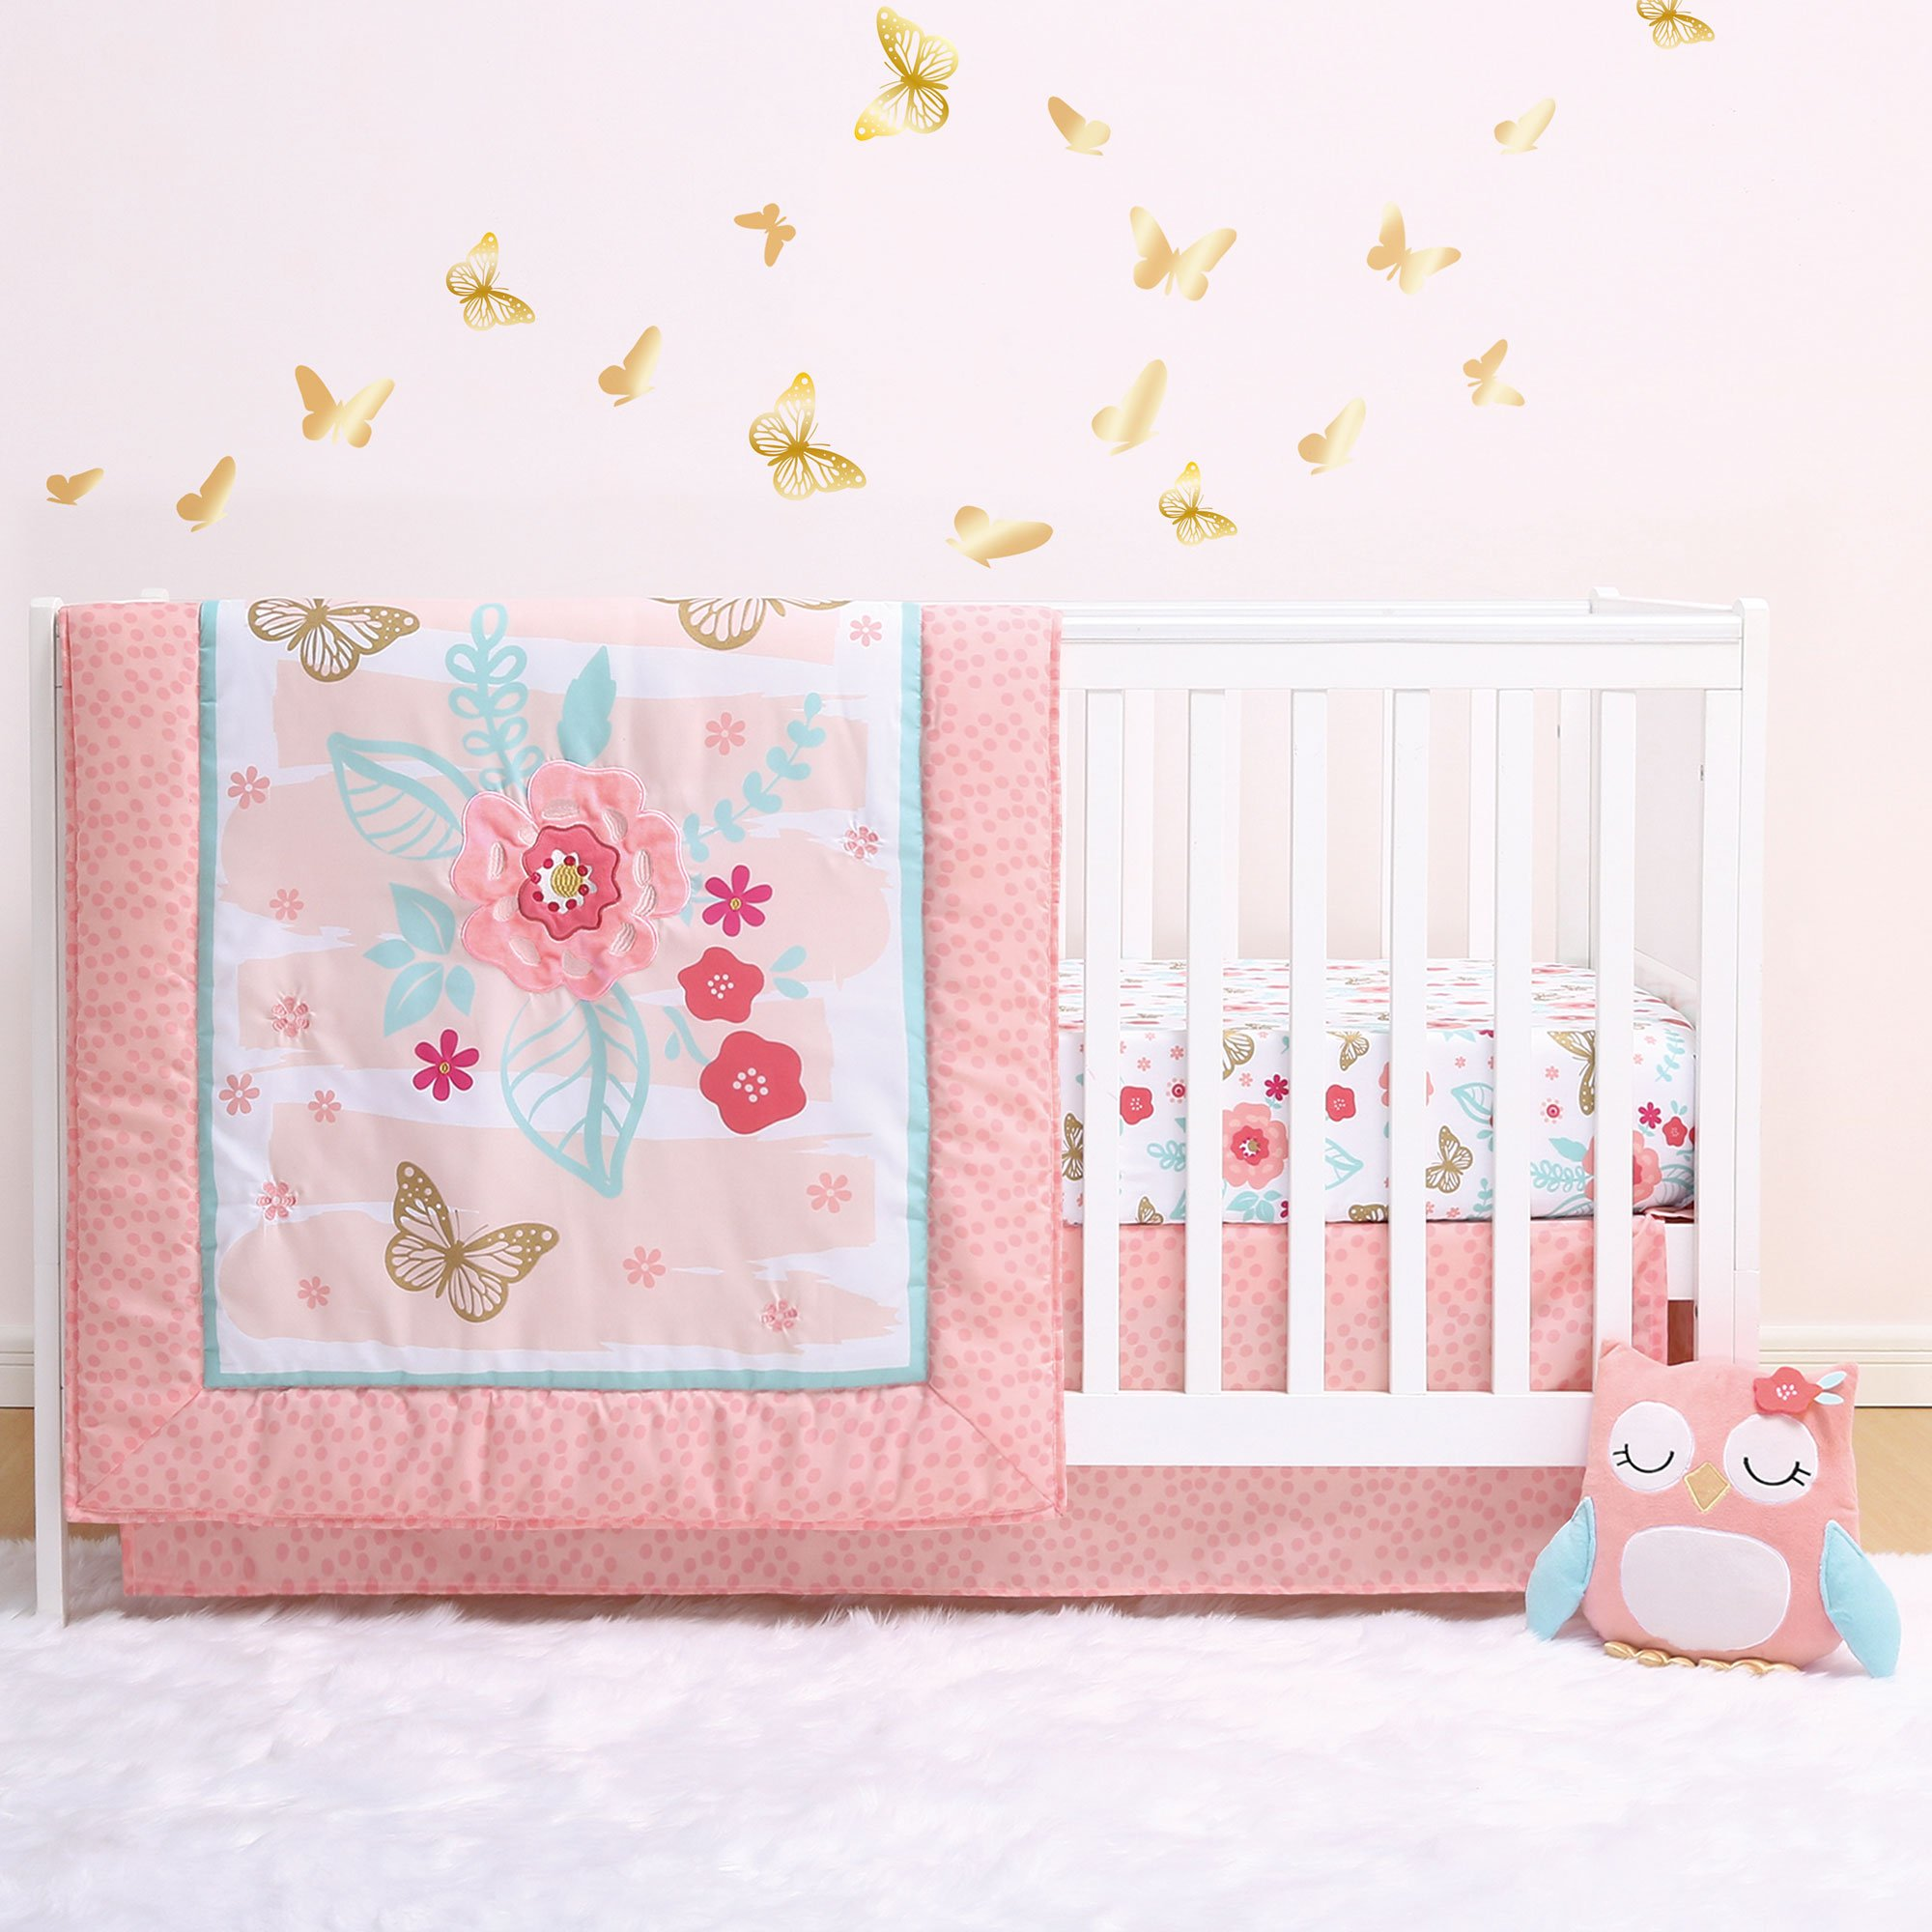 Aflutter 4-Piece Butterfly and Flowers Baby Crib Bedding Set by Little Haven by Little Haven